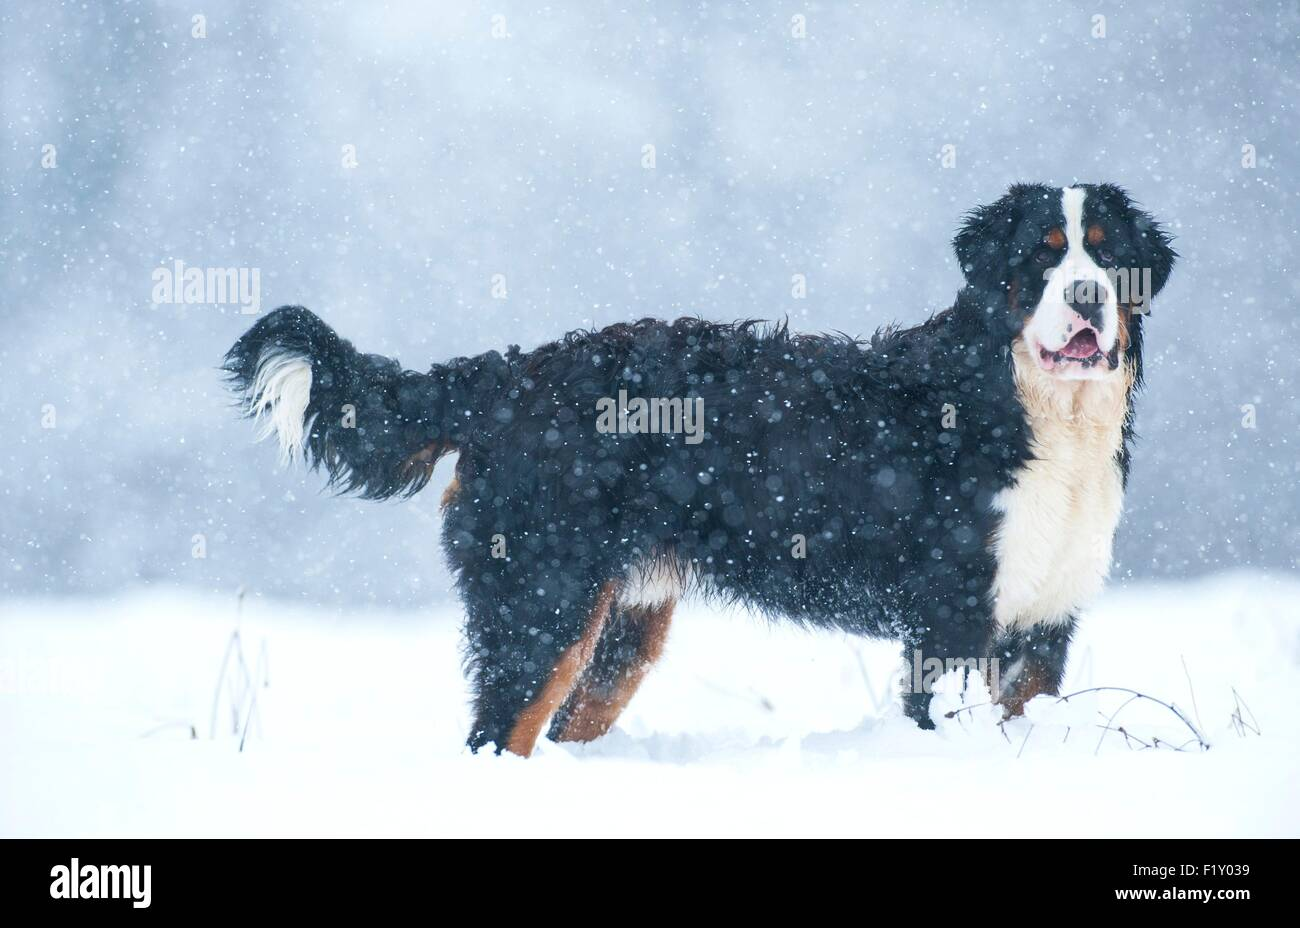 France, Isere, dog (Canis lupus familiaris), Bernese Mountain Dog in snow - Stock Image